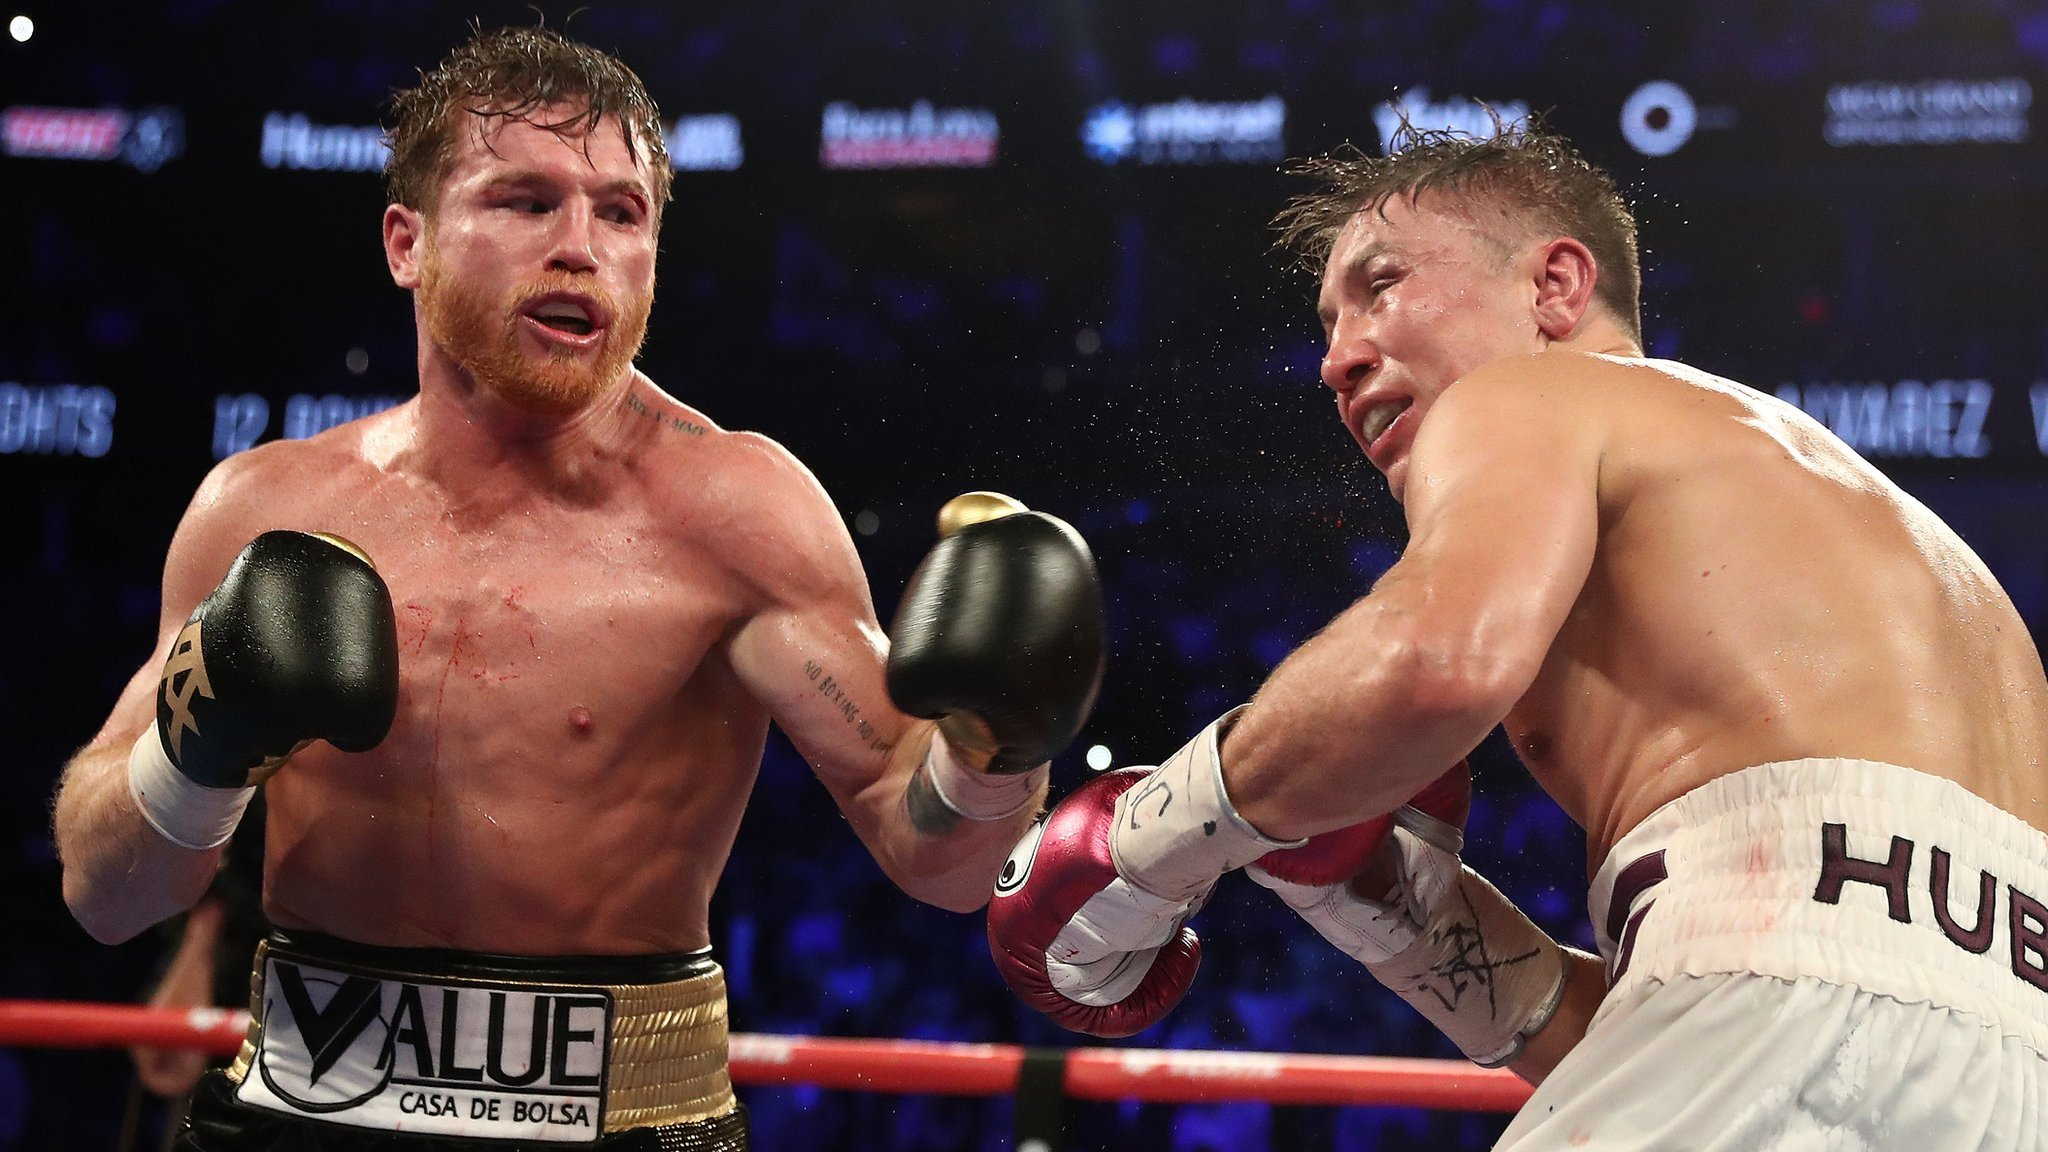 'Freaks of nature' - breaking down the Alvarez v Golovkin epic